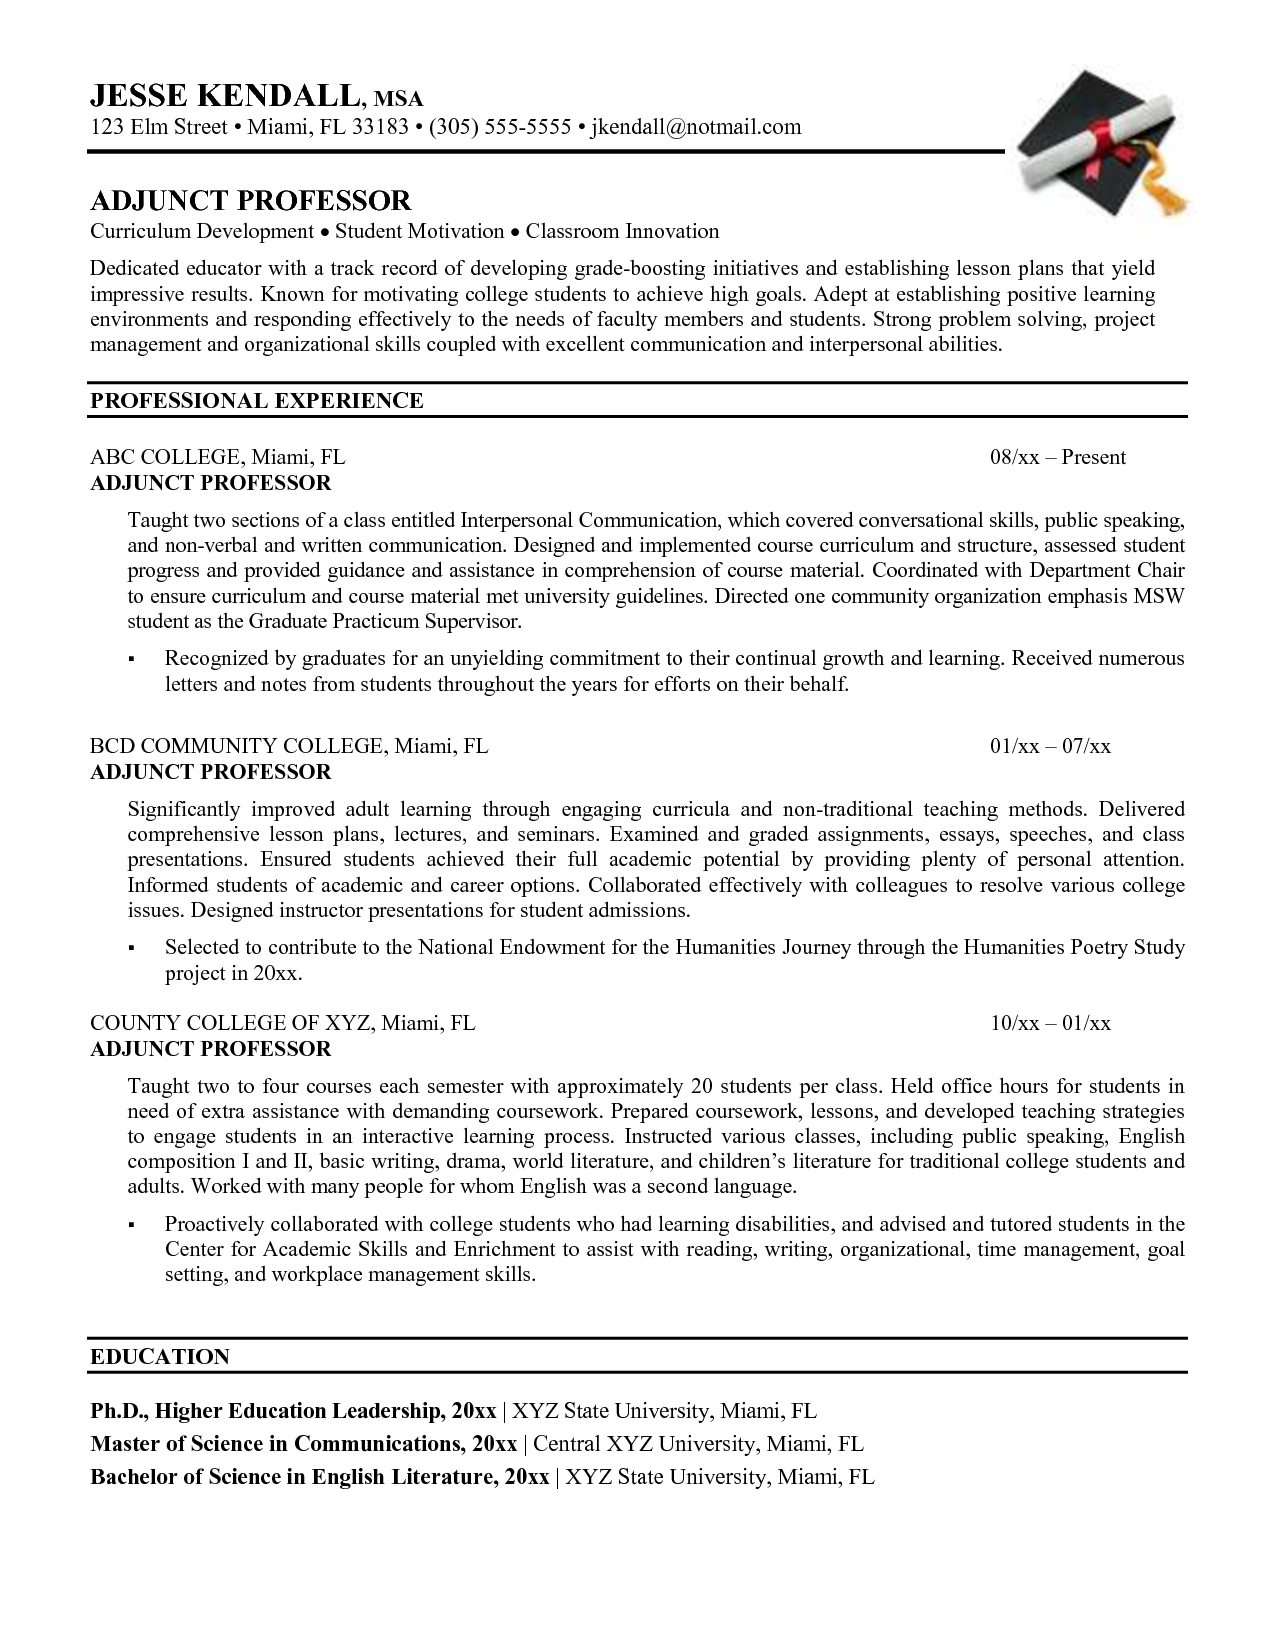 sample resume for faculty position engineering adjunct professor resume best template collection best templatesresume templatescover letter